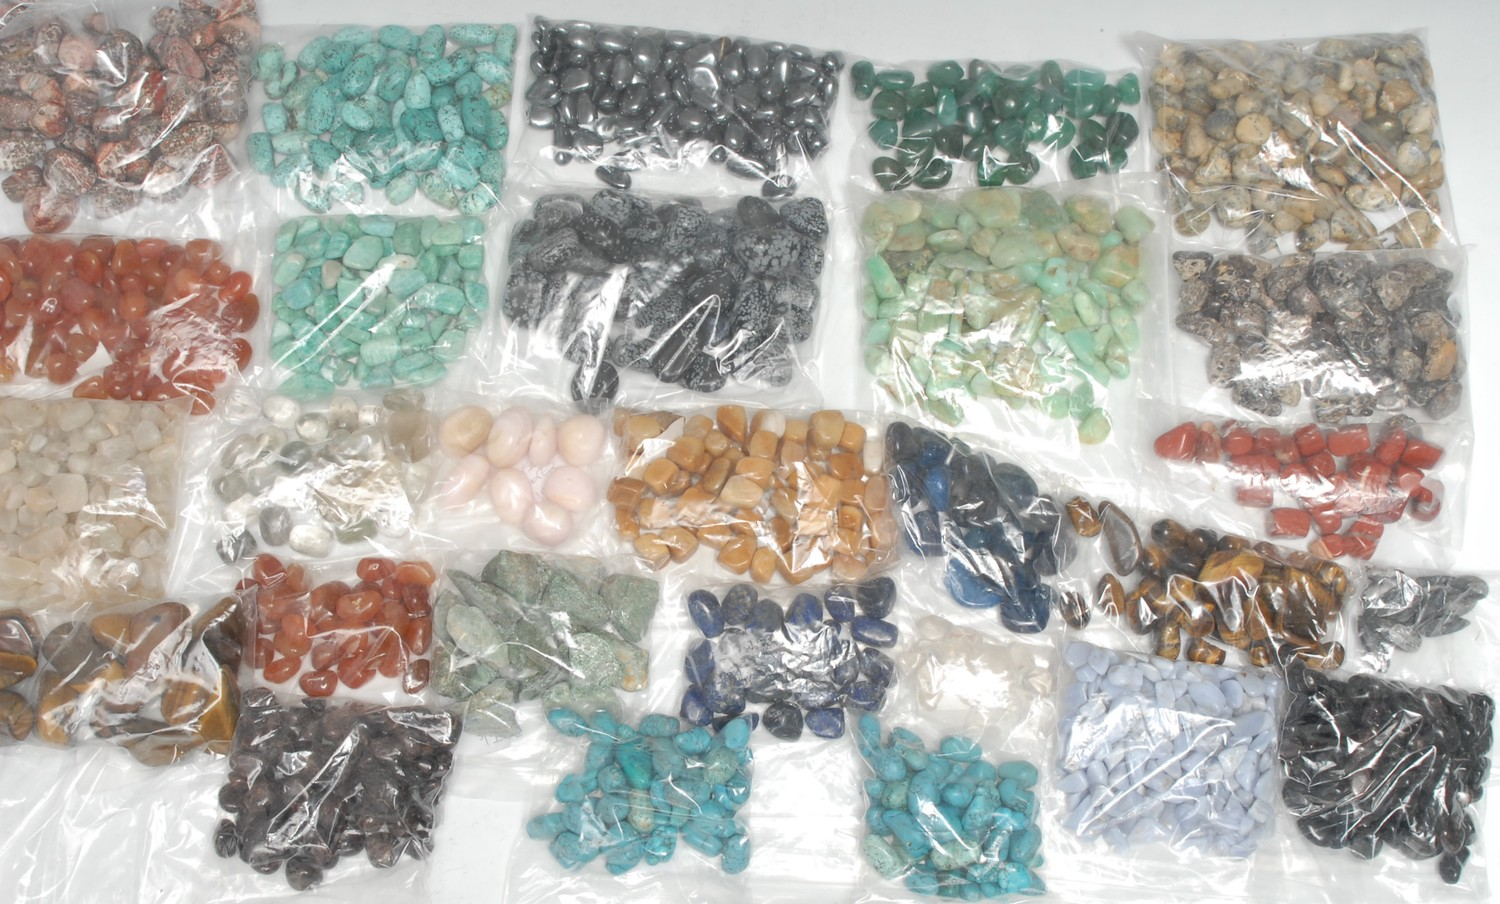 Geology and Lapidary - a collection of polished stone and mineral specimens, various samples,